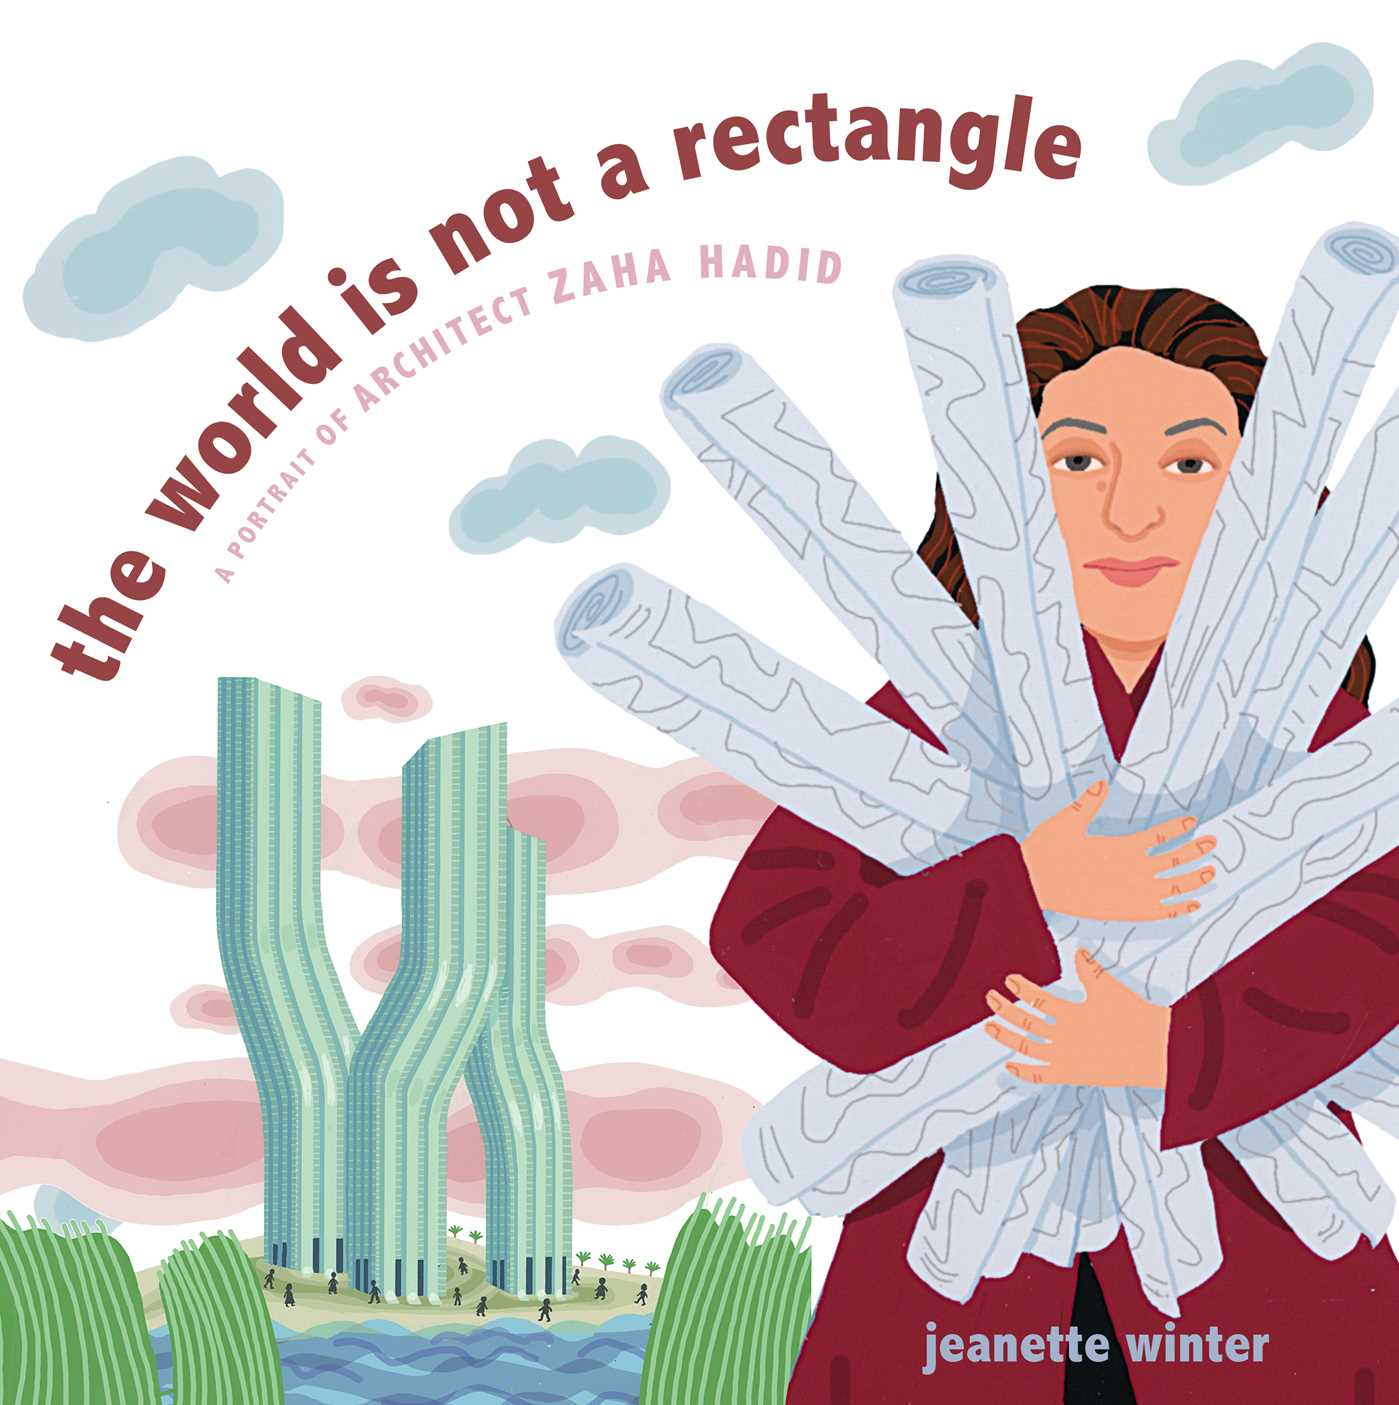 celebrate-picture-books-picture-book-review-the-world-is-not-a-rectangle-cover